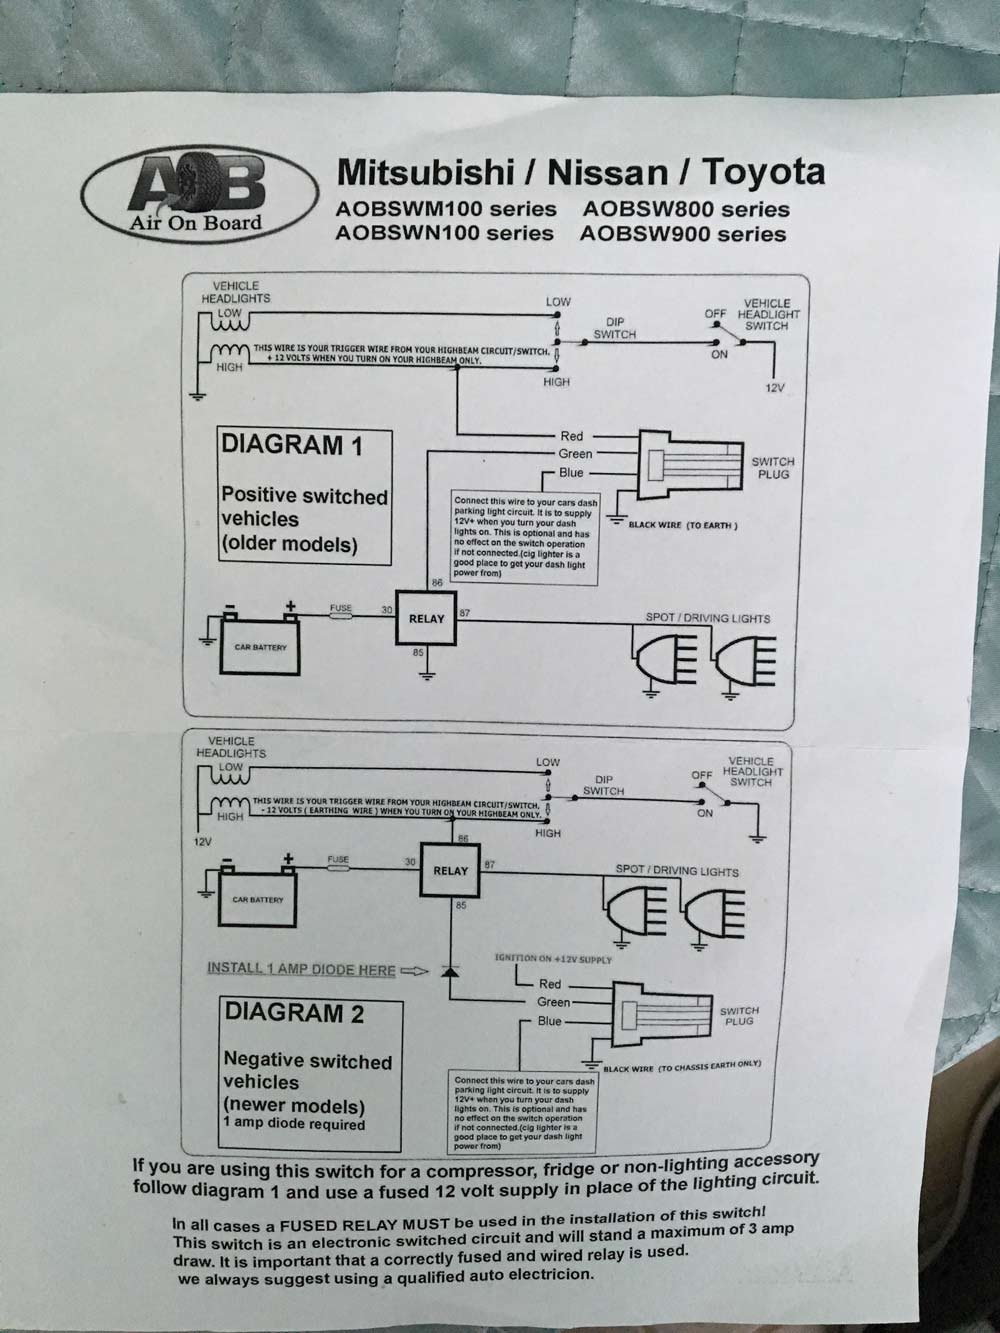 On Board Air Switch Wiring Diagram Best Secret For Craftsman Compressor 26 Images Upright 110 Pressure